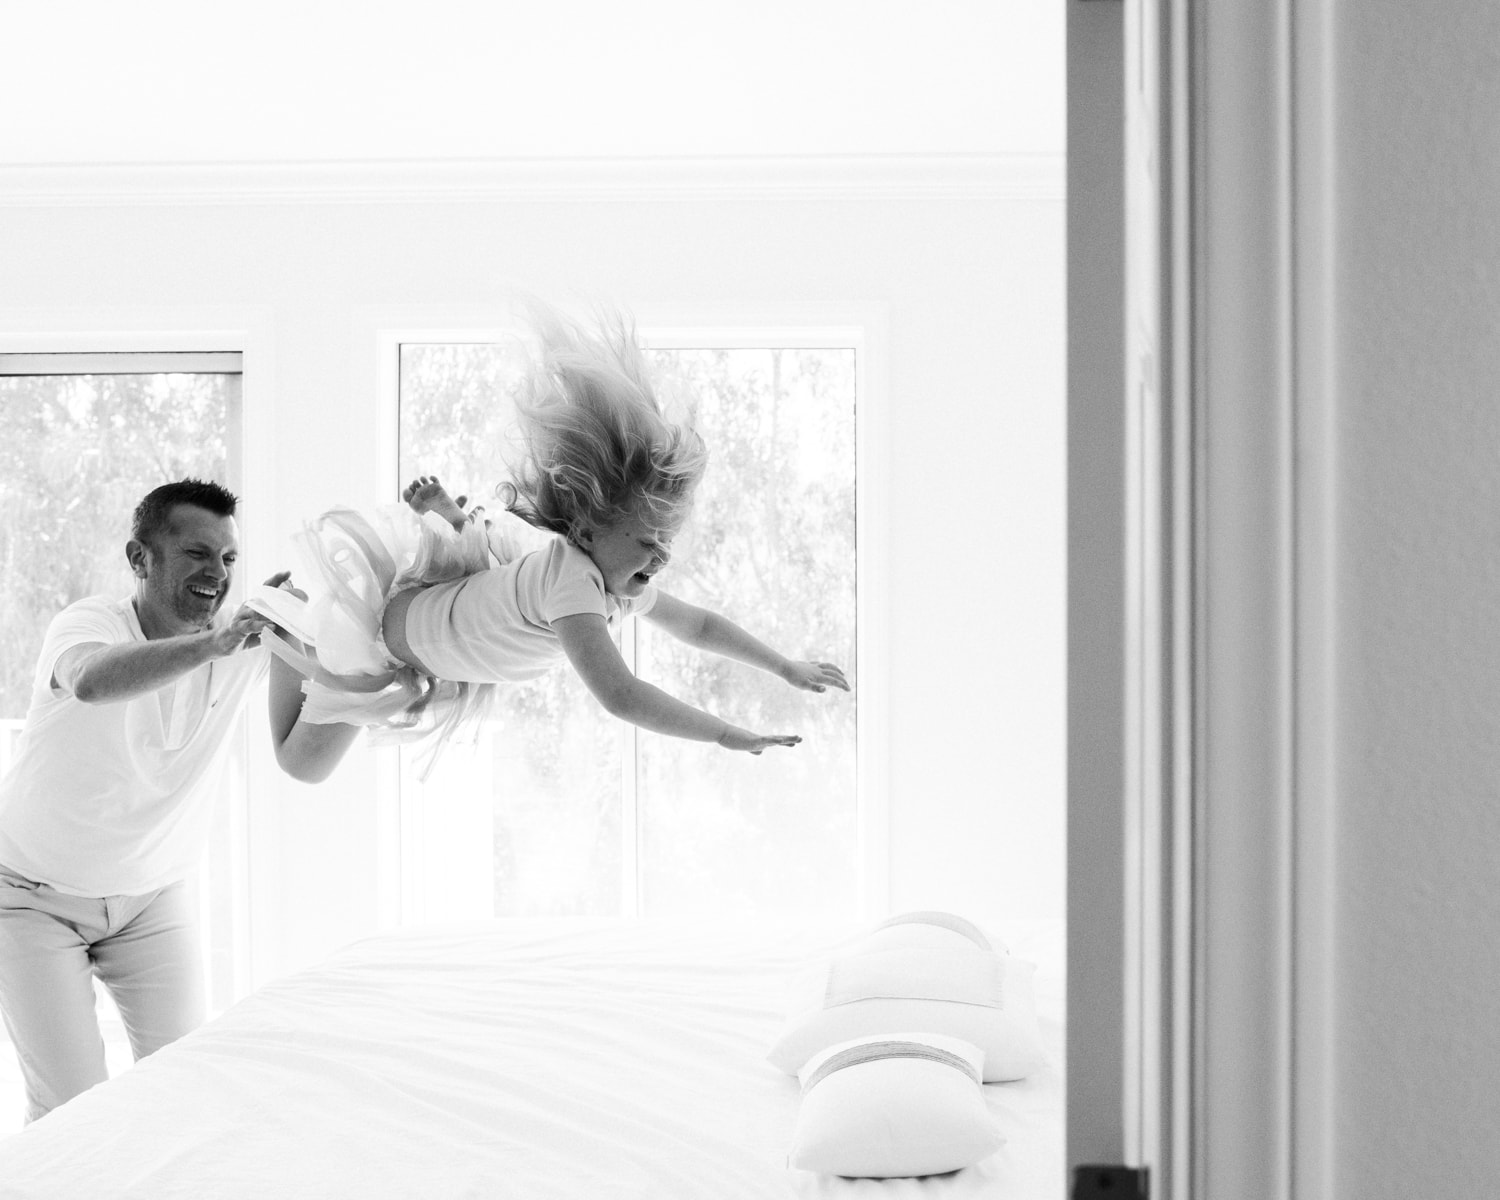 black and white image of father tossing his child onto the bed